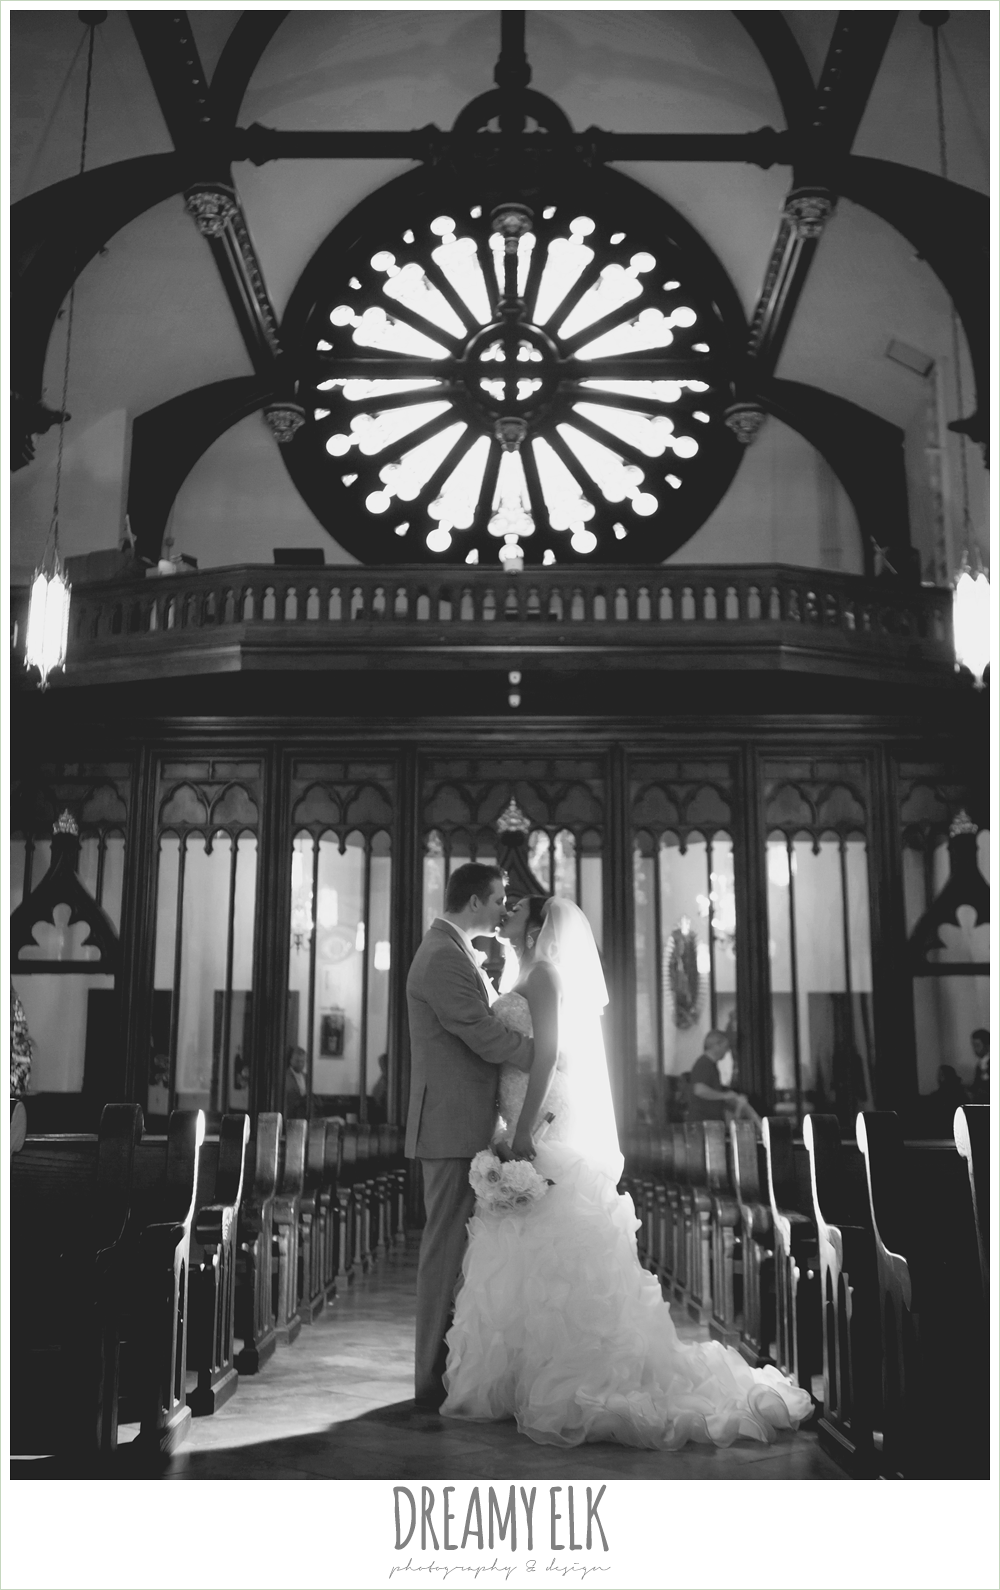 bride and groom kissing in church aisle, st mary's cathedral, downtown austin spring wedding {dreamy elk photography and design}